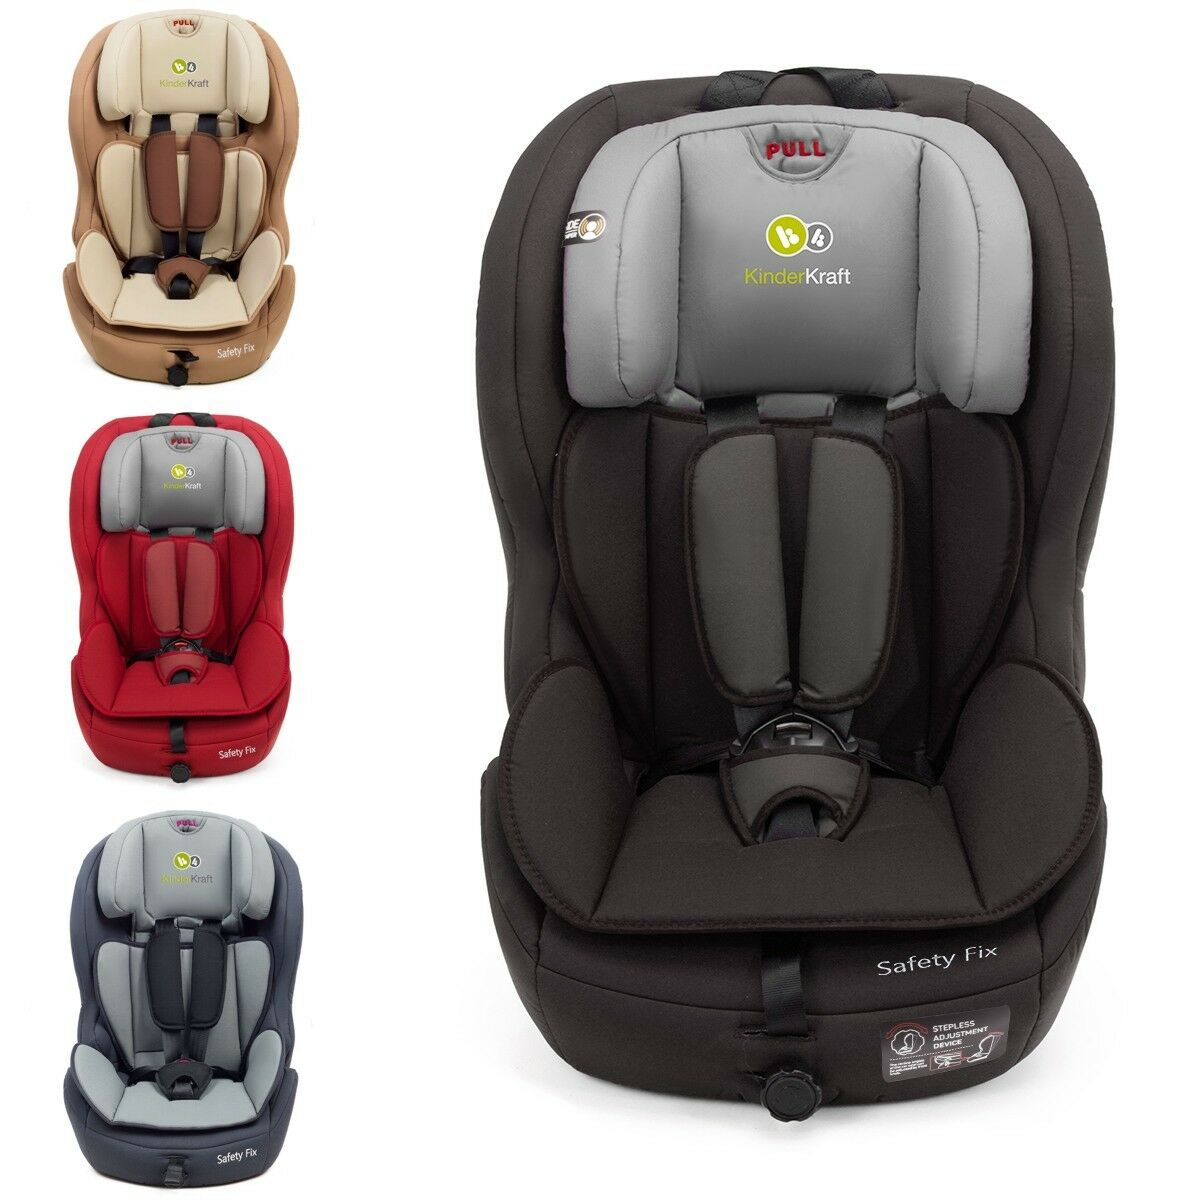 Kinderkraft safetyfix isofix si ge voiture pour b b for Chaise kinderkraft